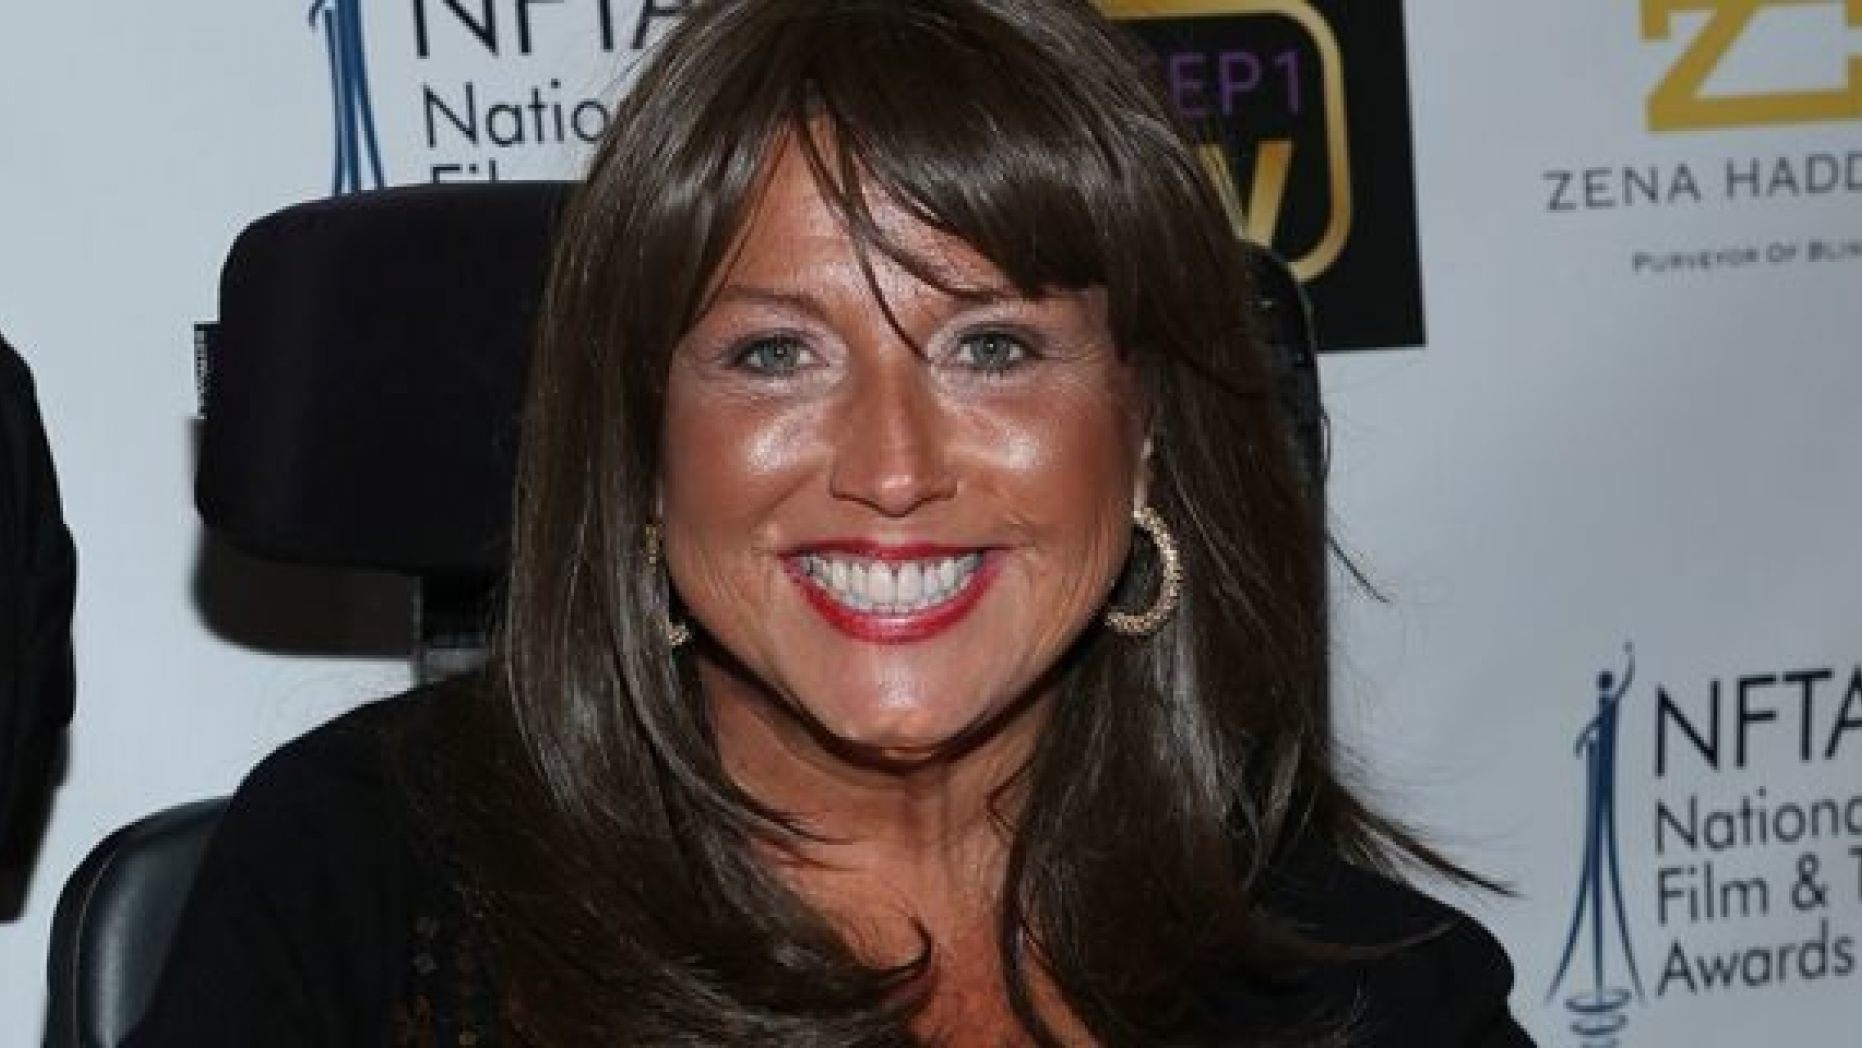 abby-lee-miller-looks-happy-and-healthier-while-at-jojo-siwas-birthday-party